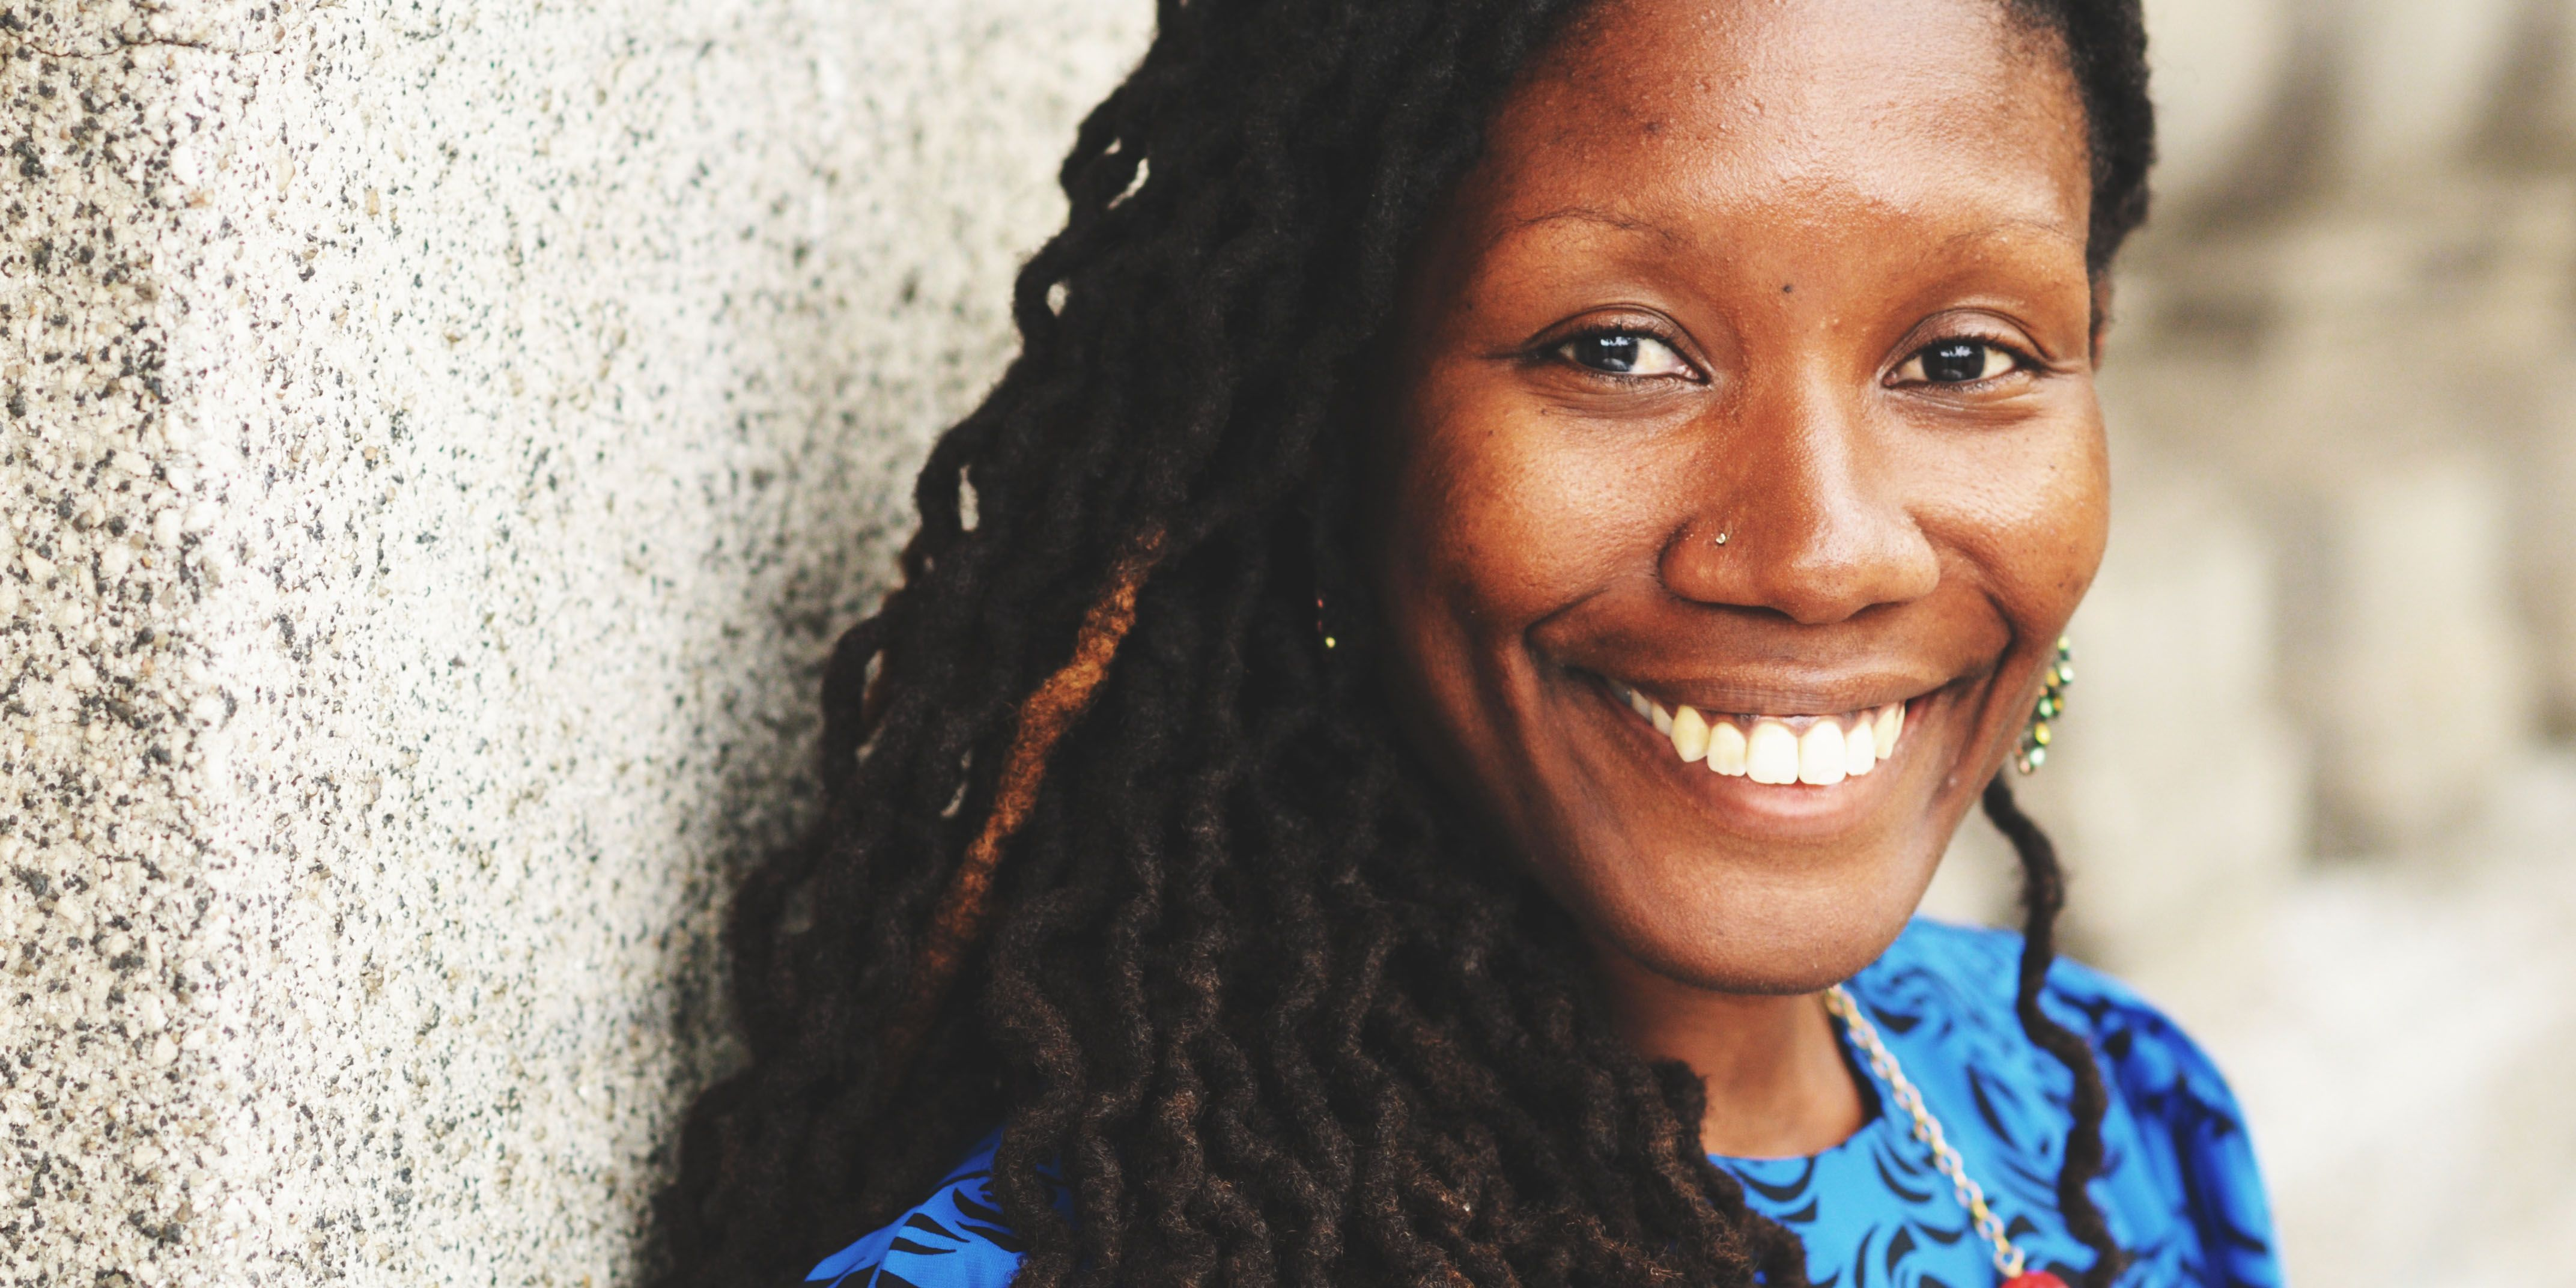 Resistance, Desire, and History: The Story of My Dreadlocks